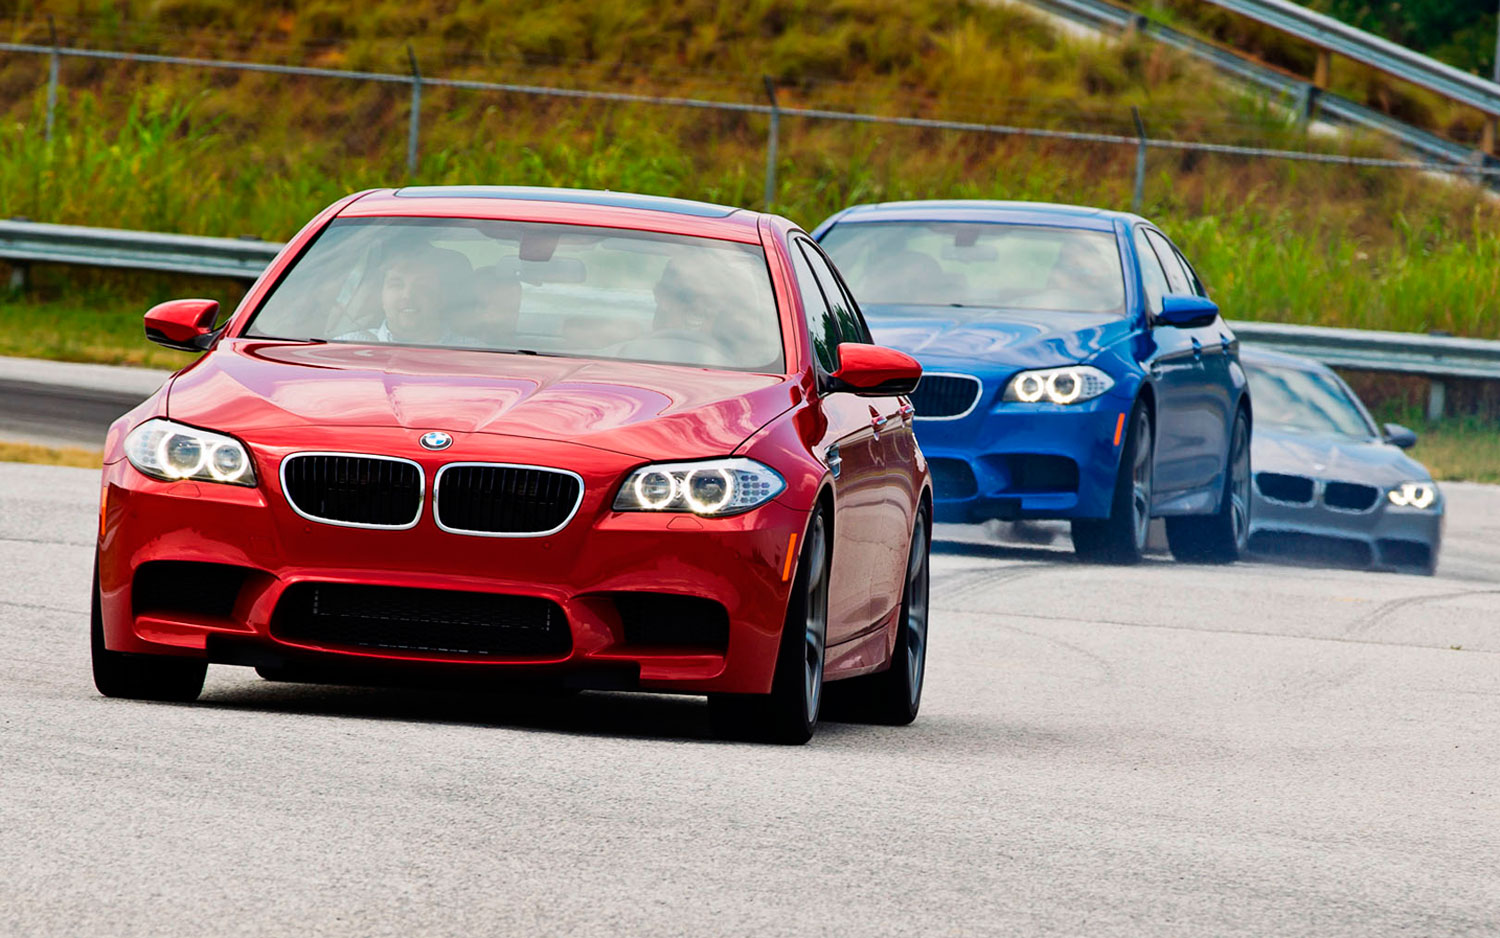 2013 BMW M5s On Handling Course1